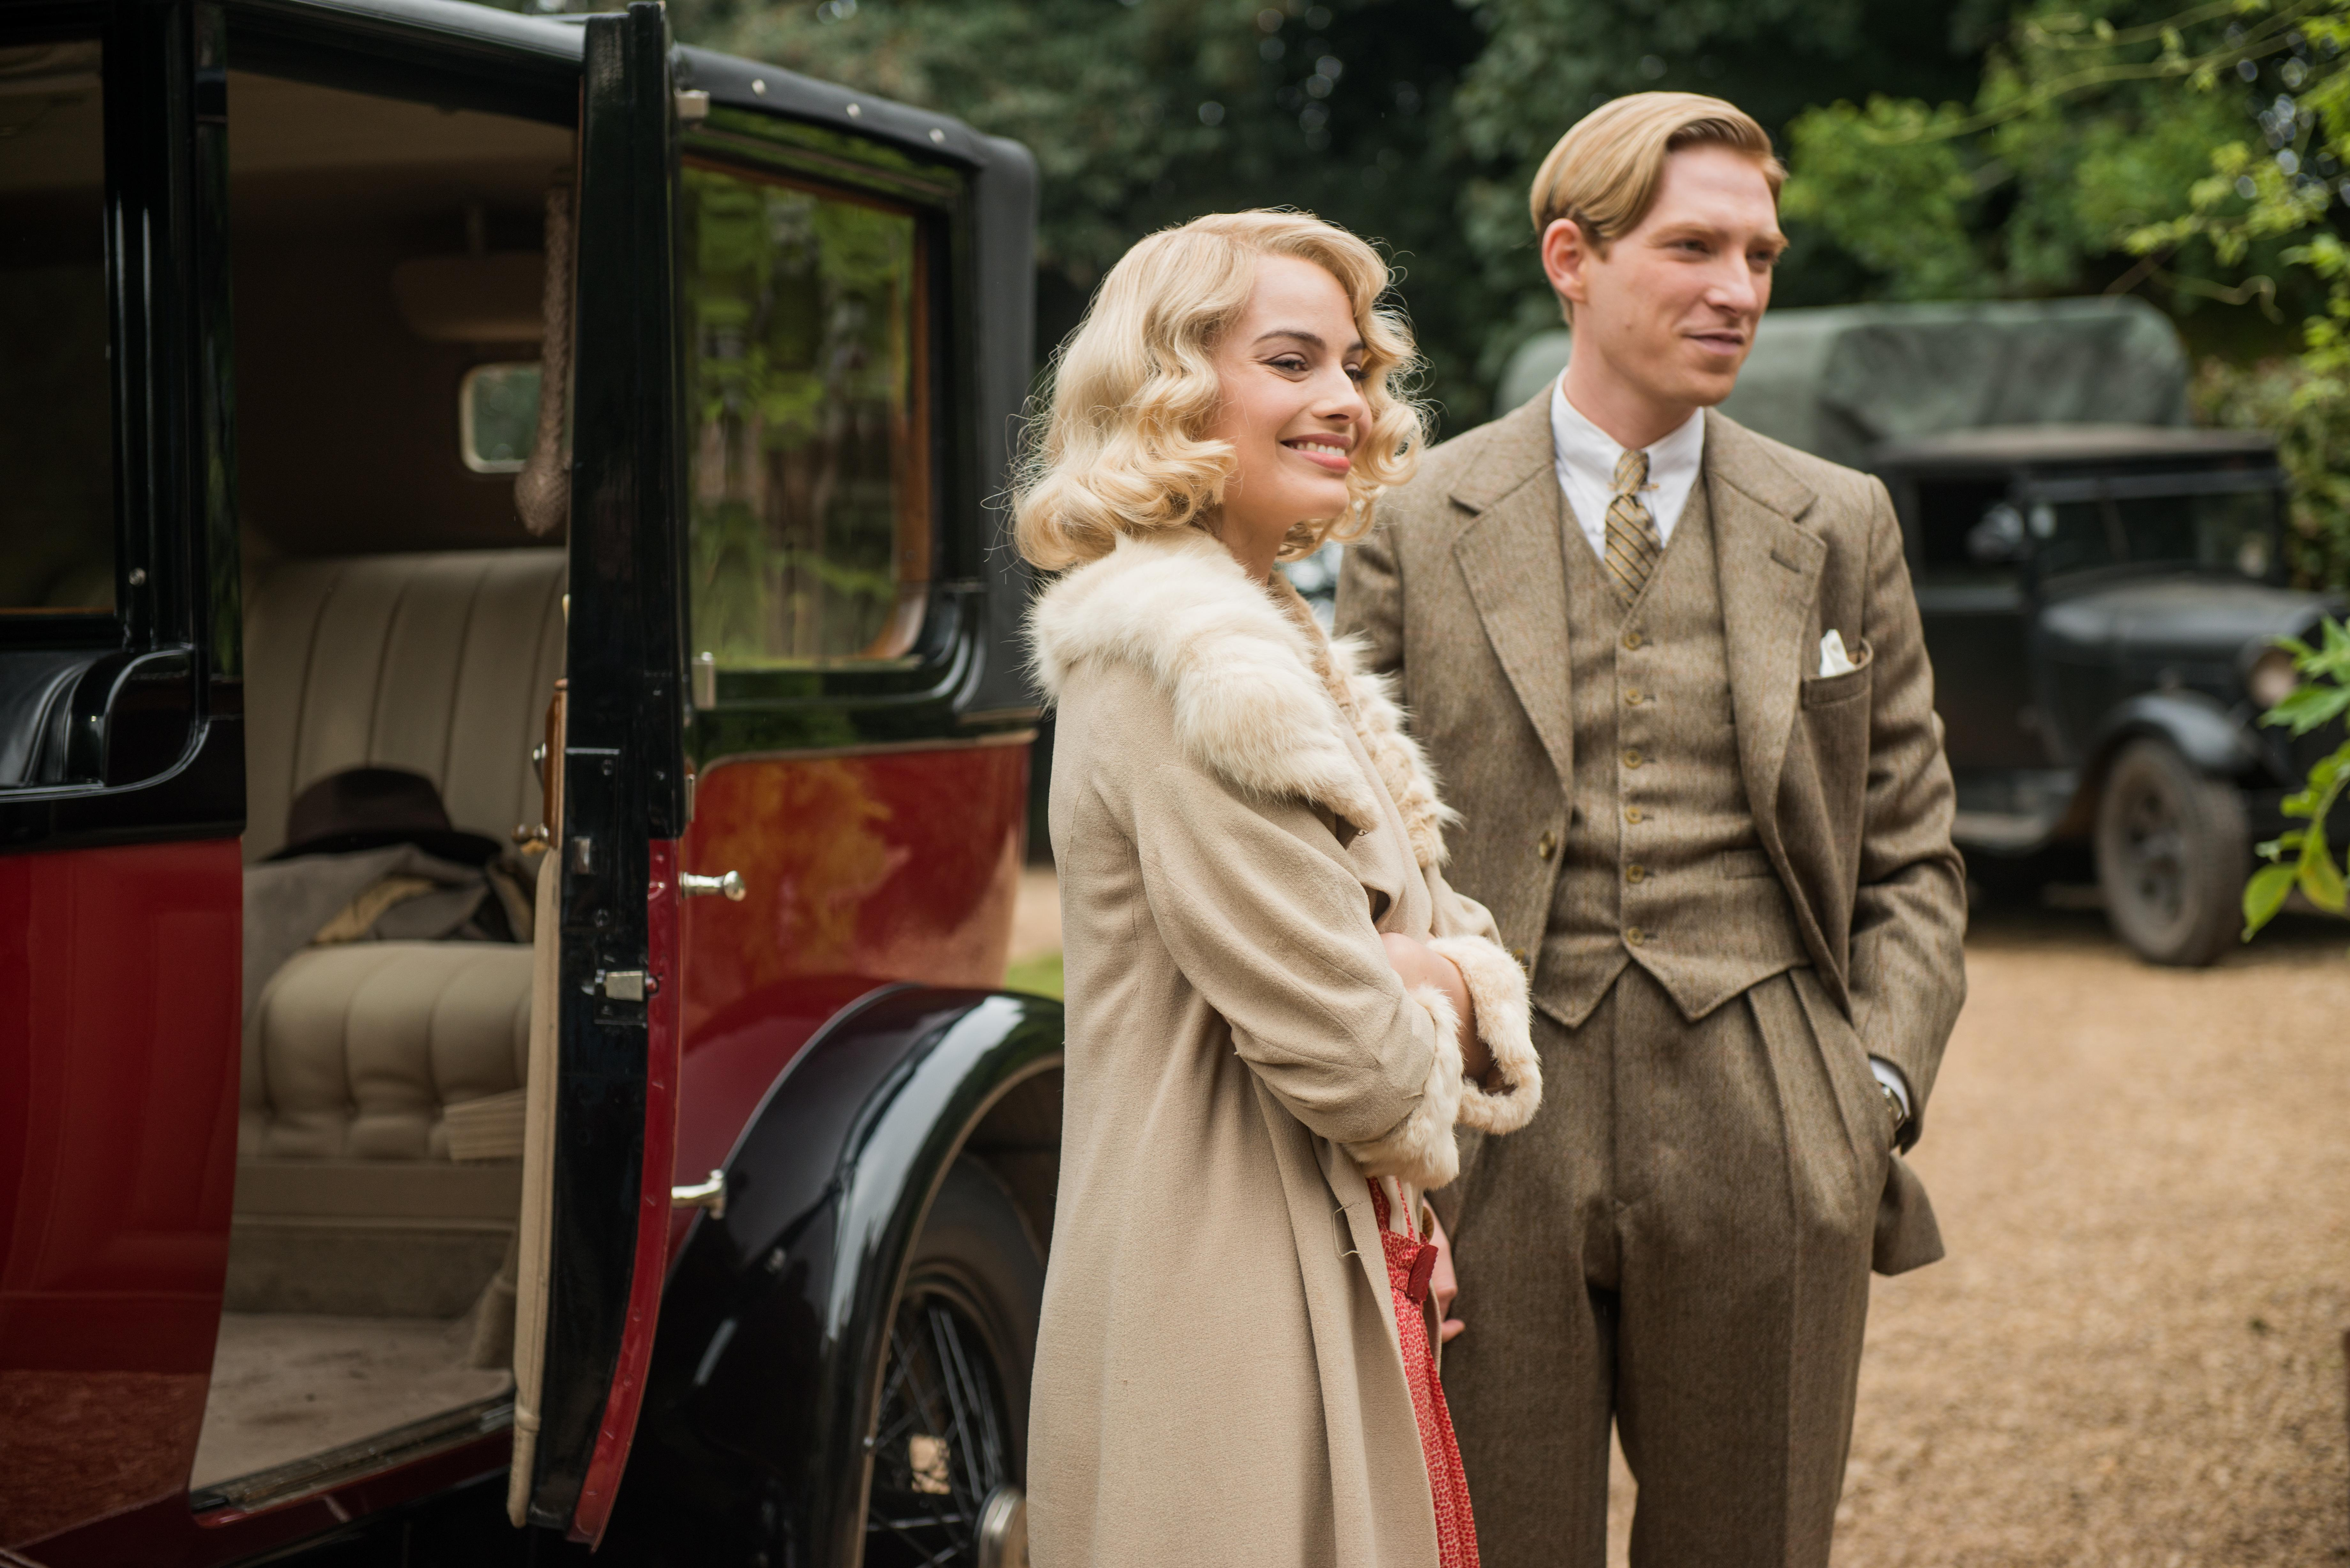 Margot Robbie and Domhnall Gleeson in the film GOODBYE CHRISTOPHER ROBIN. Photo by David Appleby. © 2017 Twentieth Century Fox Film Corporation All Rights Reserved